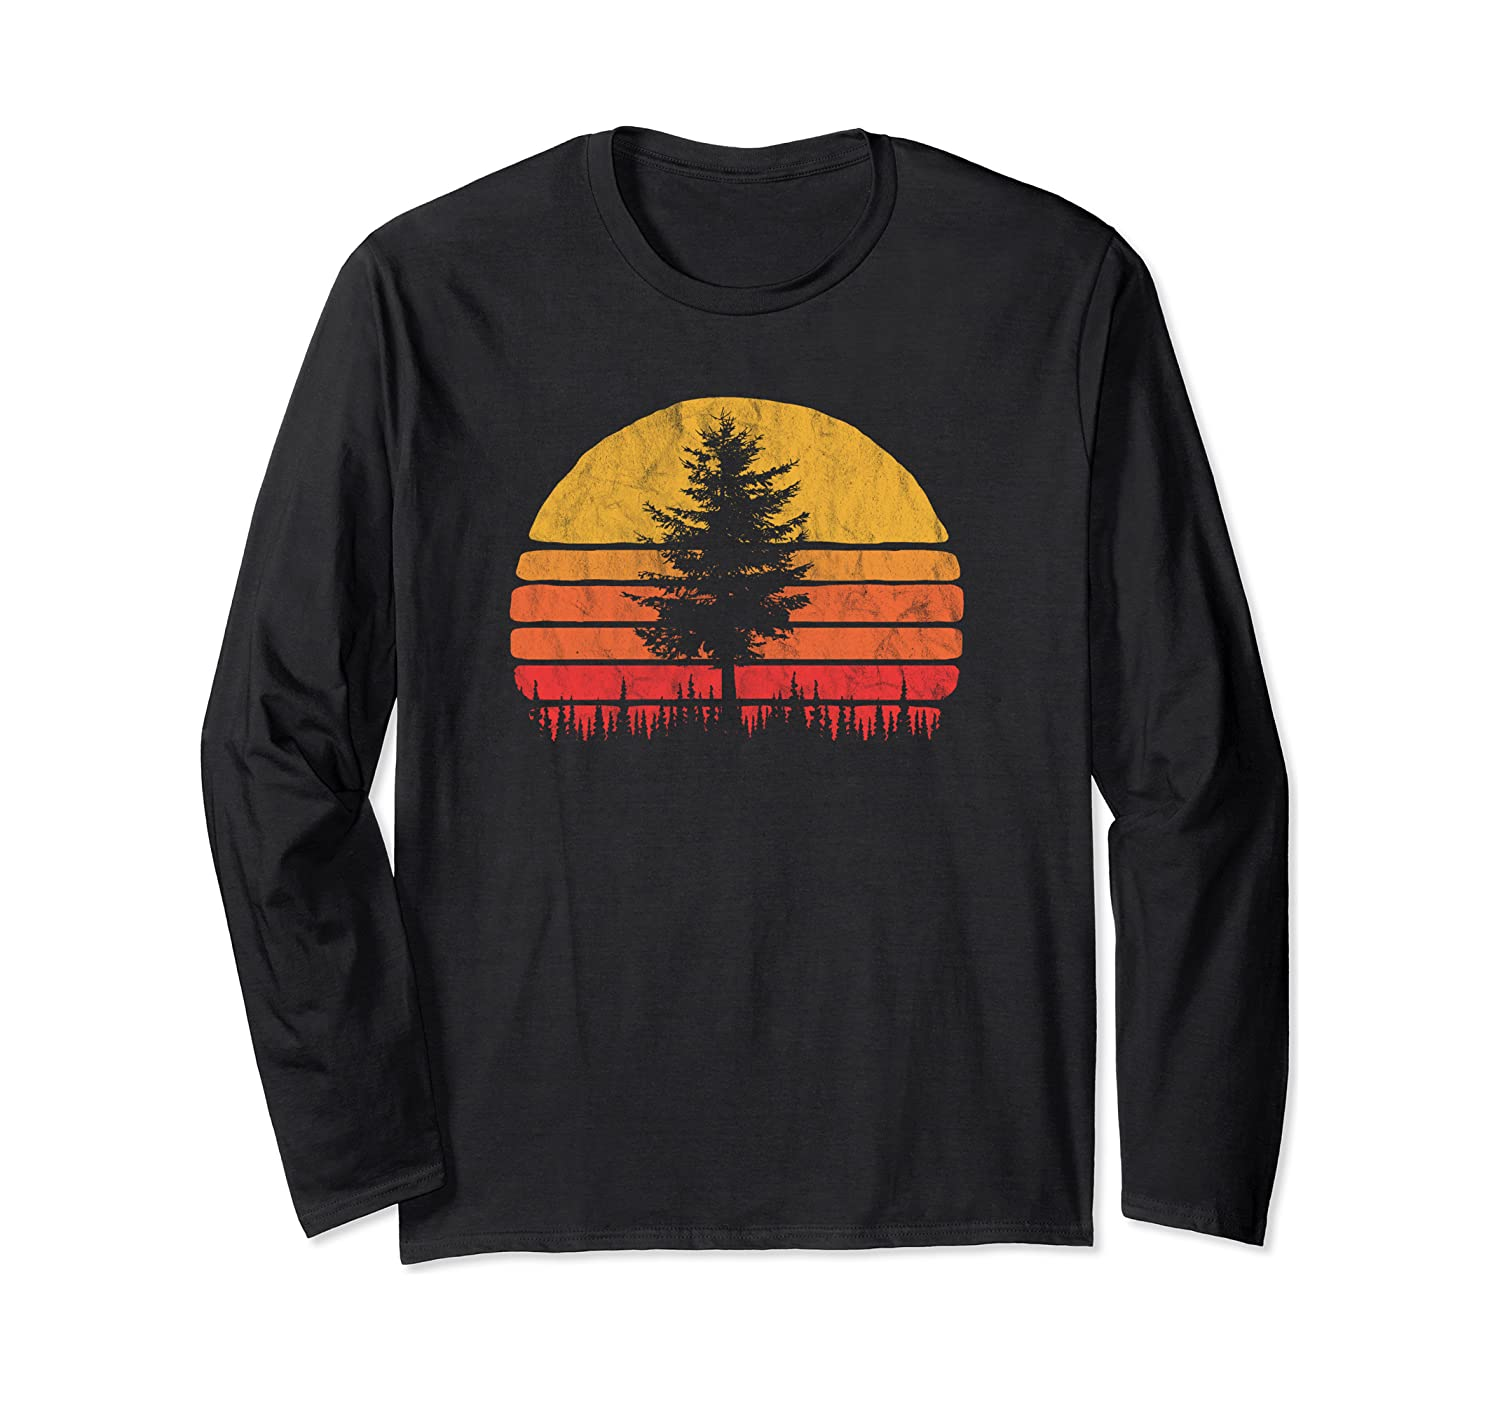 Retro Sun Minimalist Pine Tree Vintage Graphic Long Sleeve T-Shirt